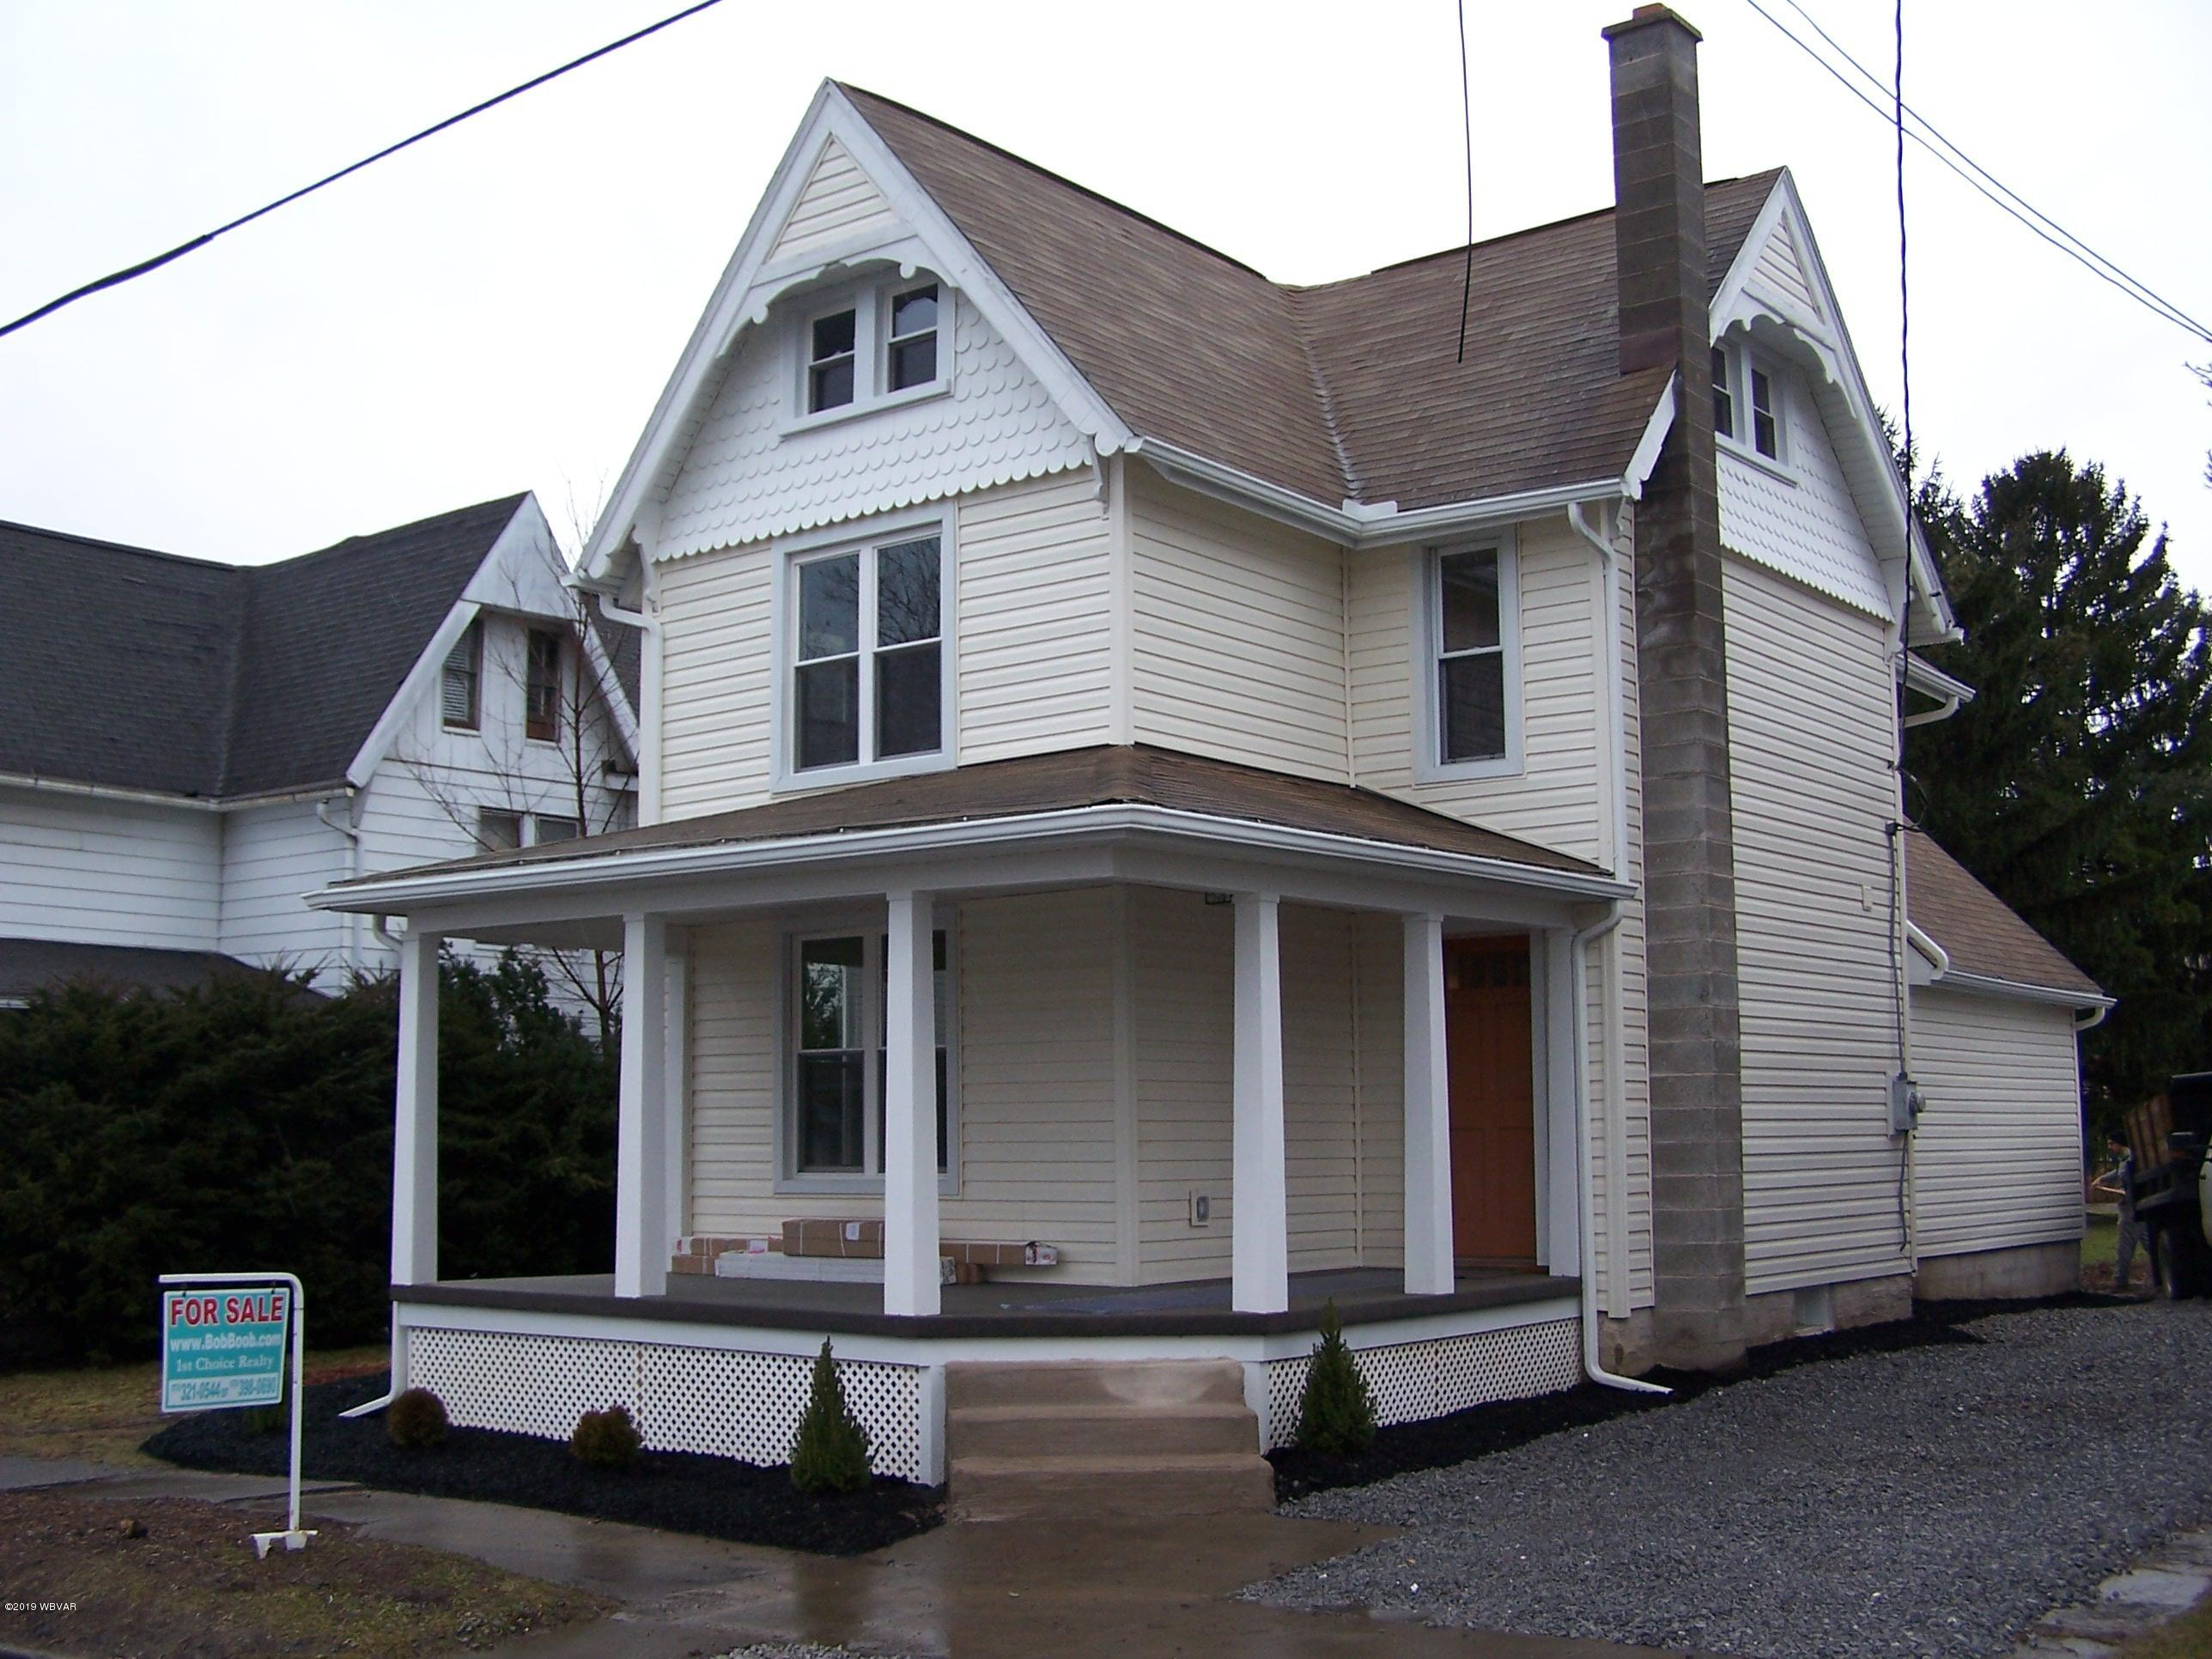 223 GLOVER STREET,Jersey Shore,PA 17740,3 Bedrooms Bedrooms,2.5 BathroomsBathrooms,Residential,GLOVER,WB-86155